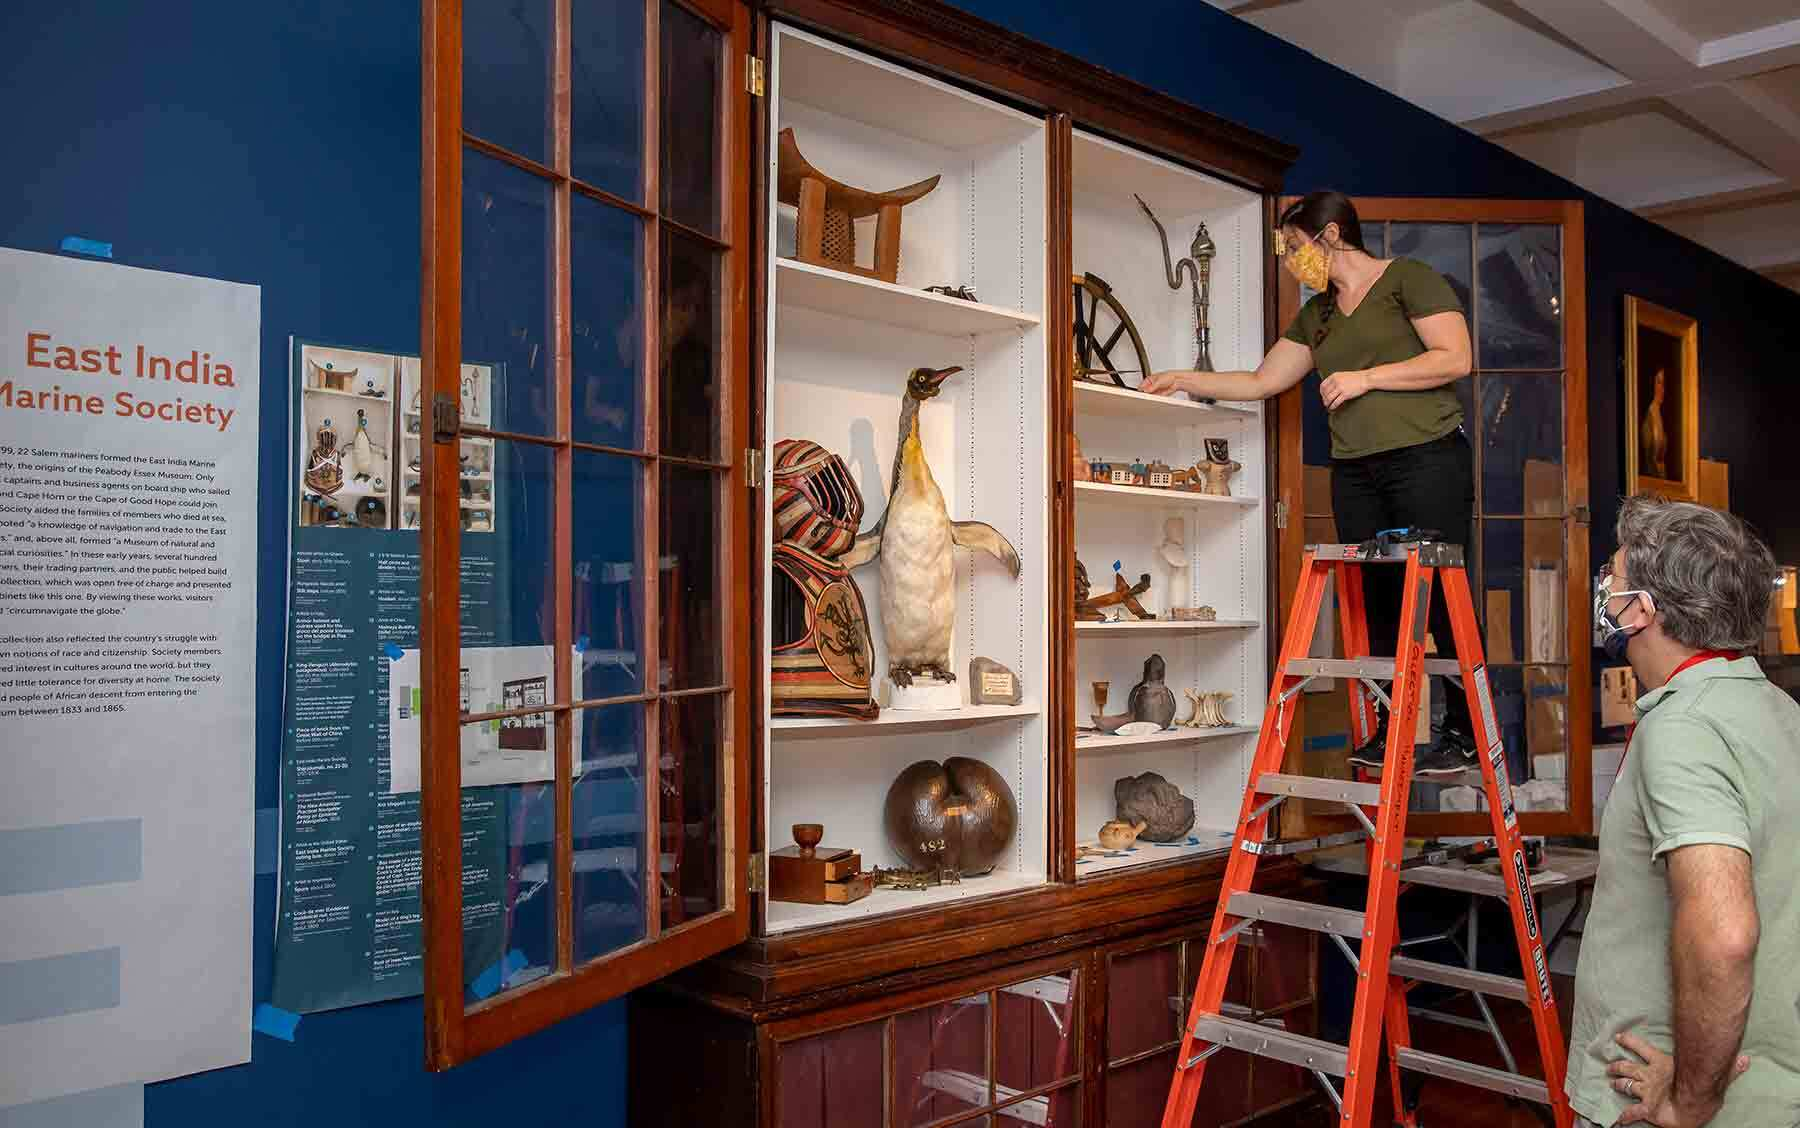 East India Marine Hall case being installed in the Salem Stories exhibition. Photo by Kathy Tarantola/PEM